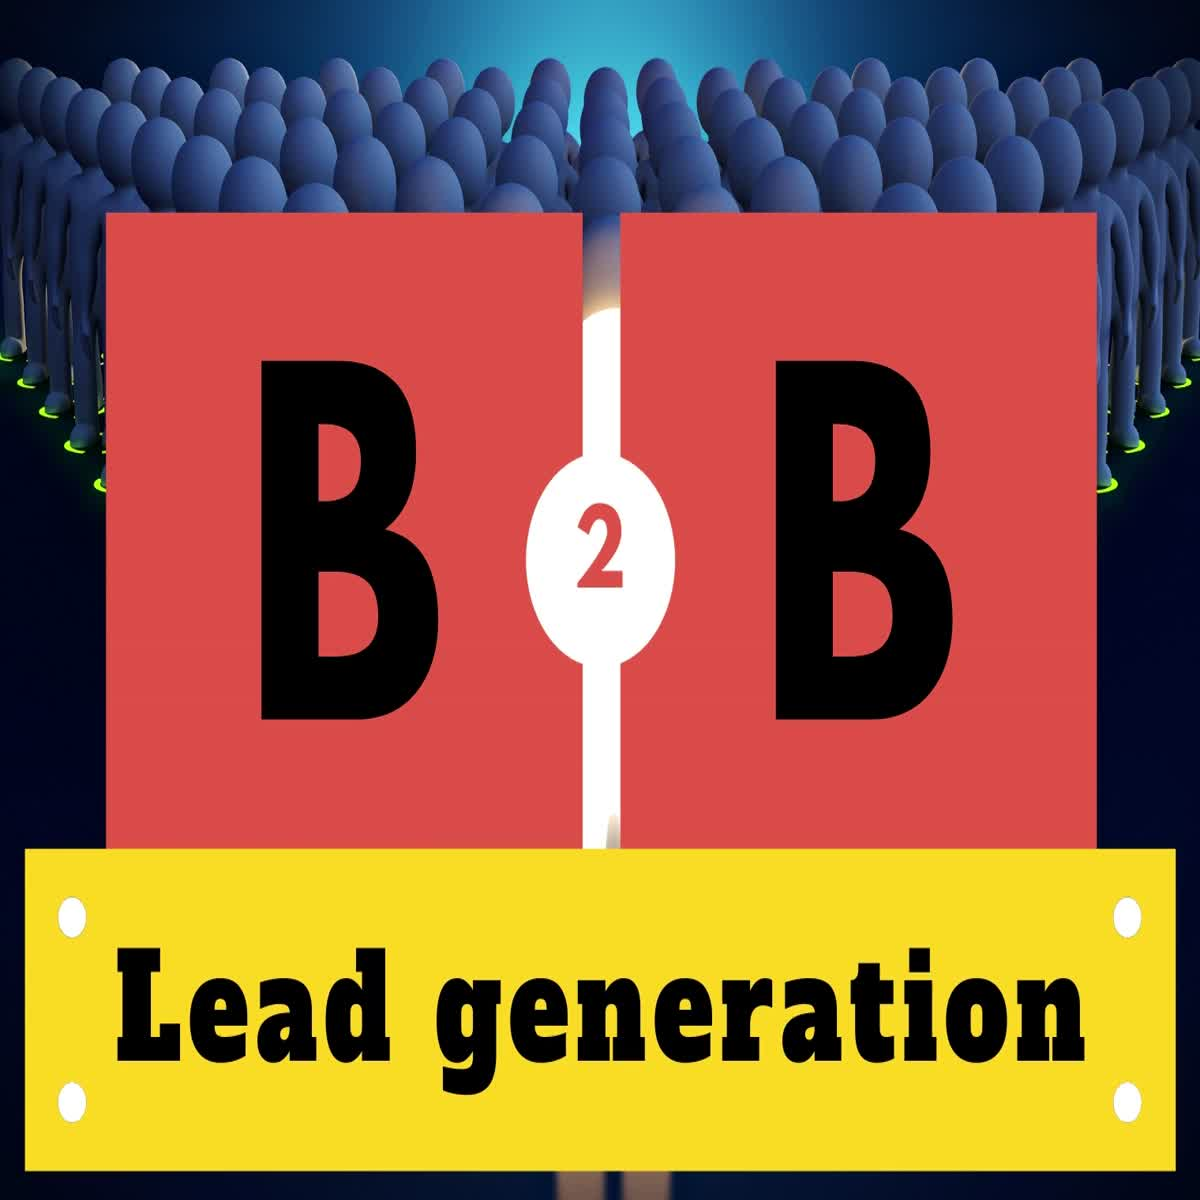 I will do 100 exact B2B lead generation and create a massive email list through online directory